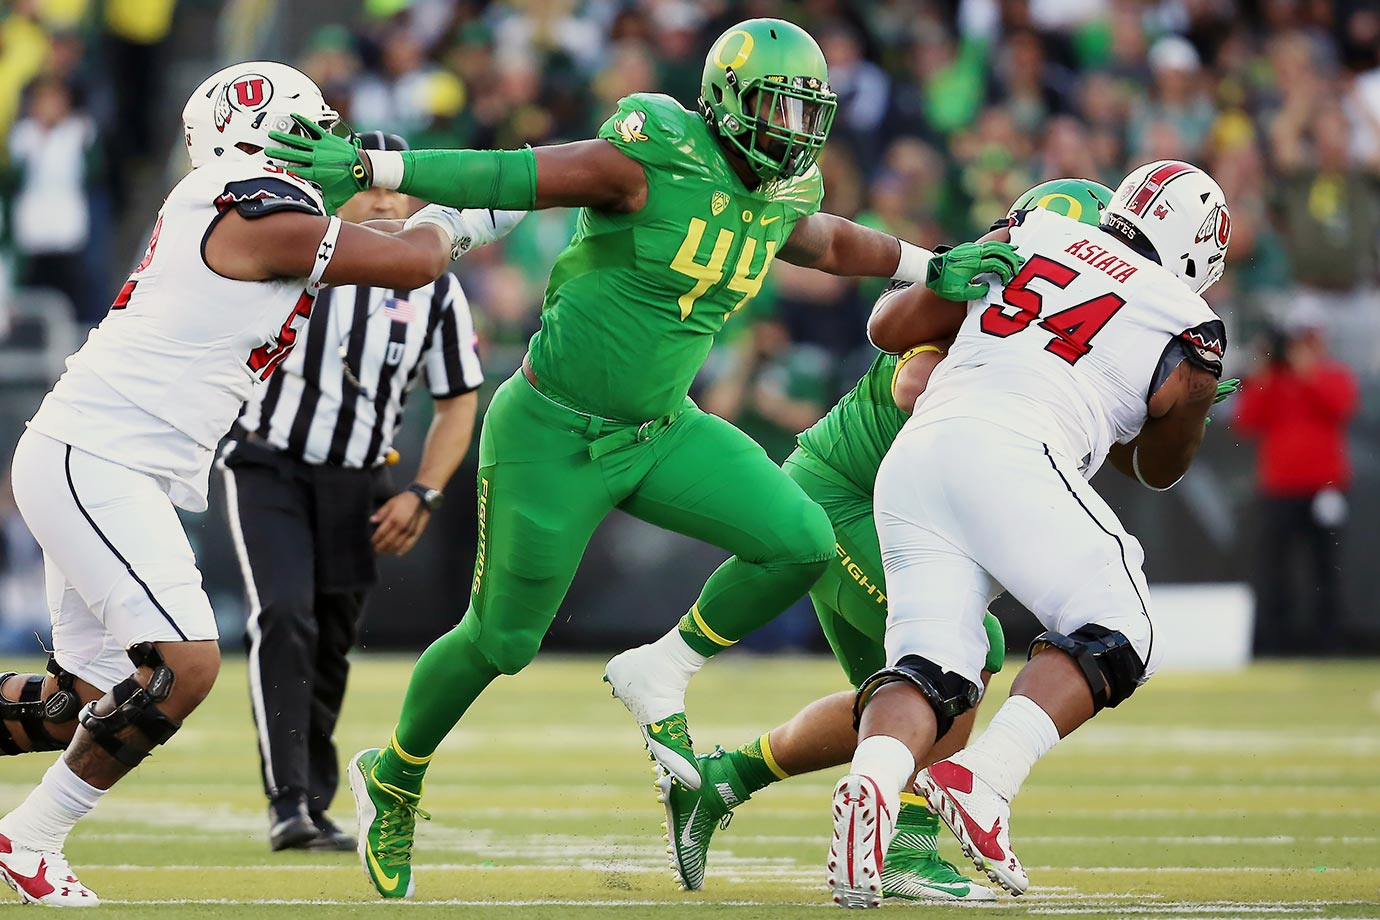 "It sounds a little odd to say that Buckner, who recorded 9.5 sacks and was just named Pac-12 Defensive Player of the Year, still needs work as a pass rusher. That's the area for growth, though. The 6'7"", 290-pounder is a matchup nightmare against the run, setting the edge with his length and strength, then staying active through the whistle."